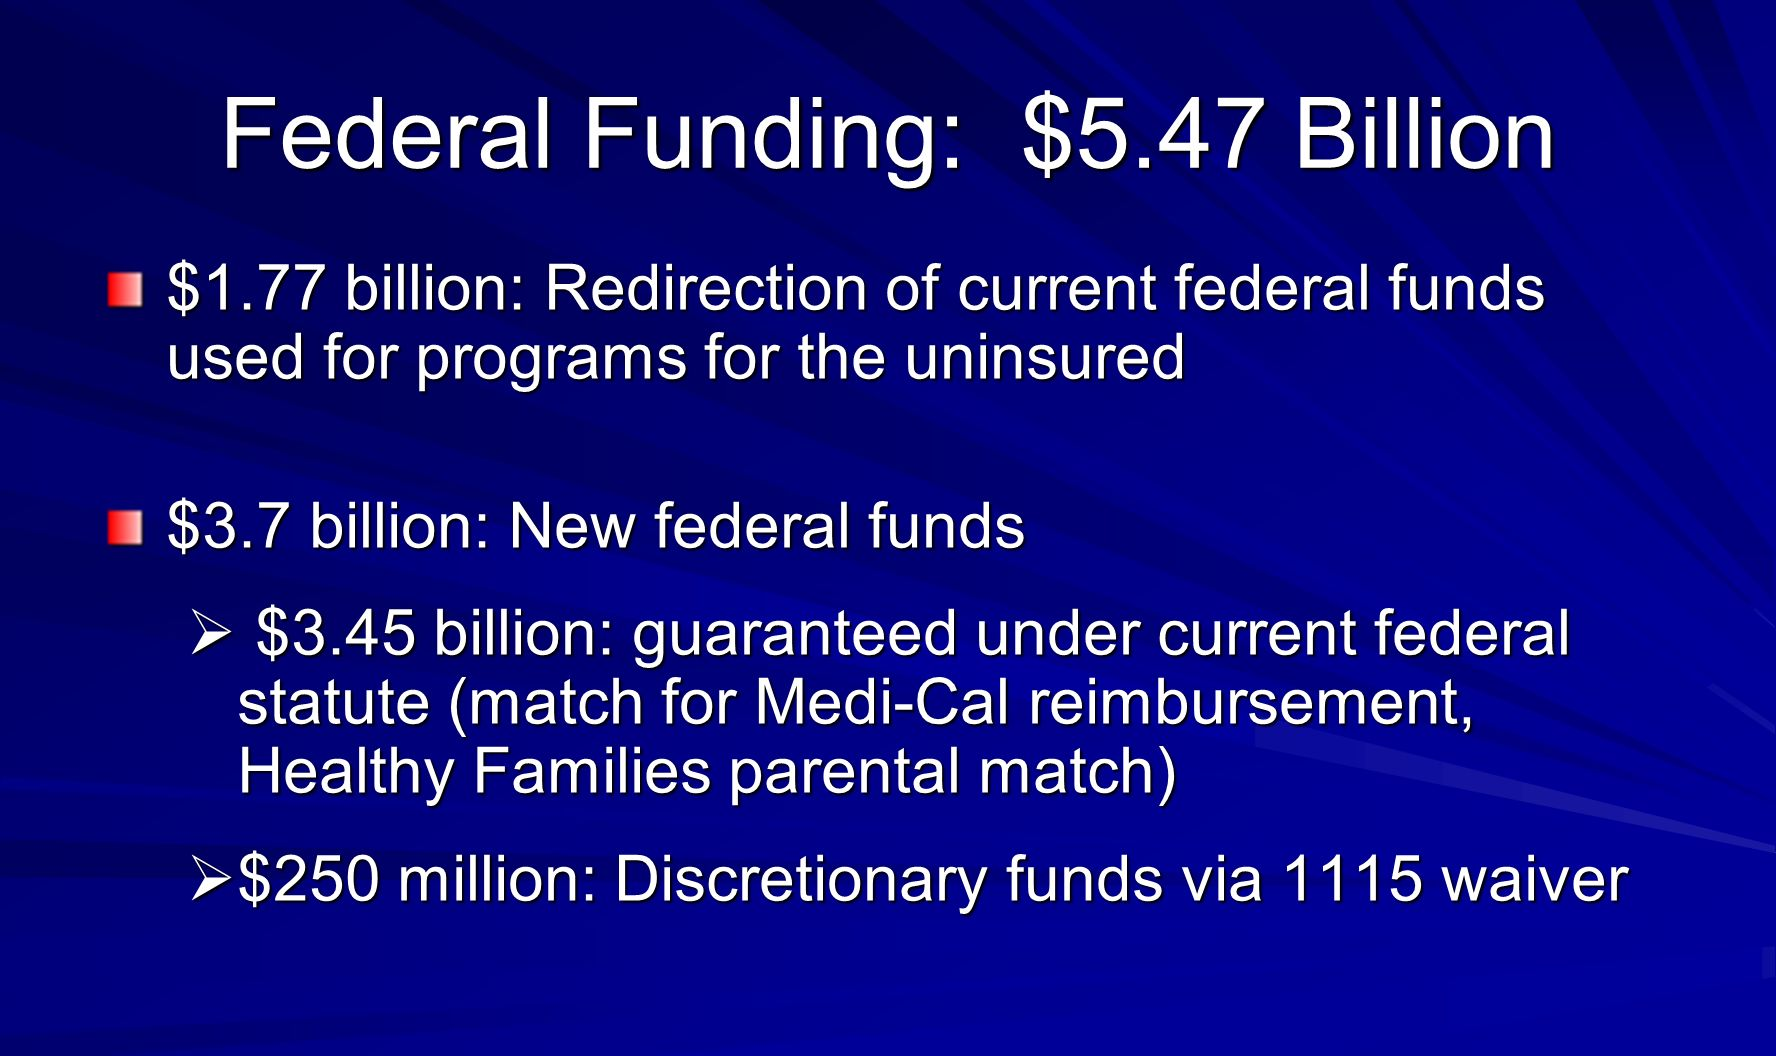 Federal Funding: $5.47 Billion $1.77 billion: Redirection of current federal funds used for programs for the uninsured $3.7 billion: New federal funds